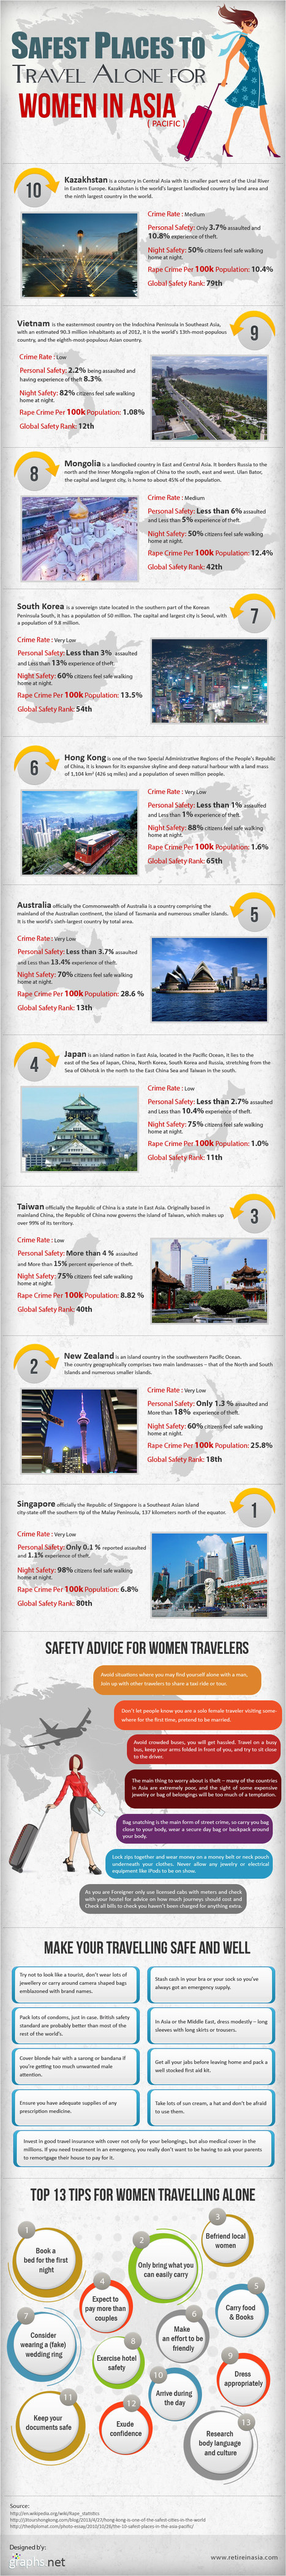 10 Safest Asian Countries to Travel Alone for Women [INFOGRAPHIC] | EPIC Infographic | Scoop.it